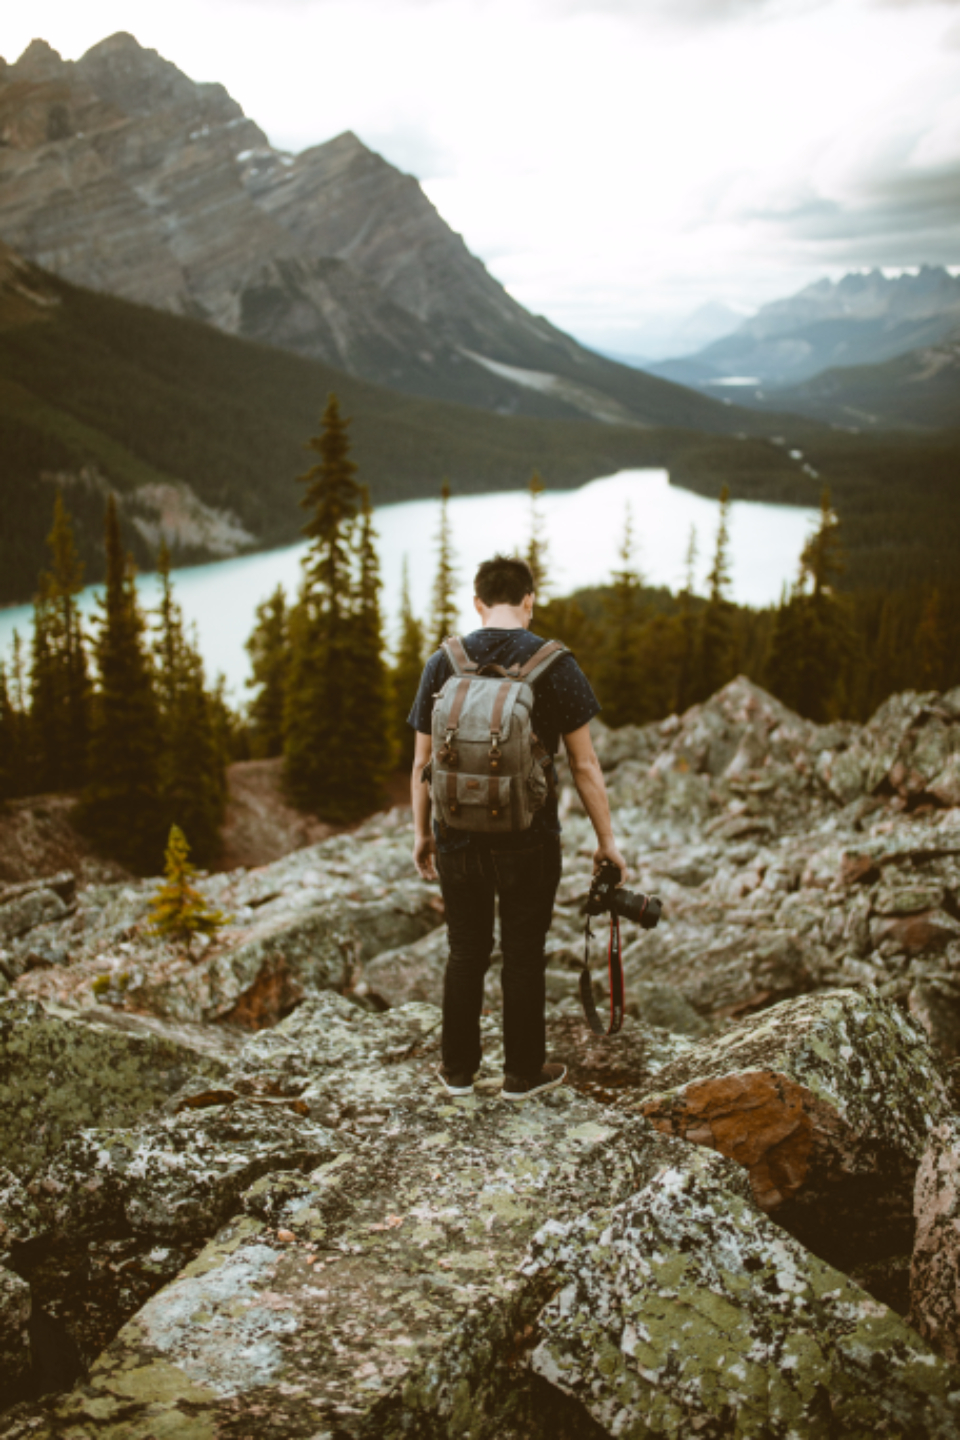 Boy guy man male person people lake nature earth sky rocks mountain mountains Pyeto Alberta photographer photograph photo camera Canon lens backpack asian Chinese